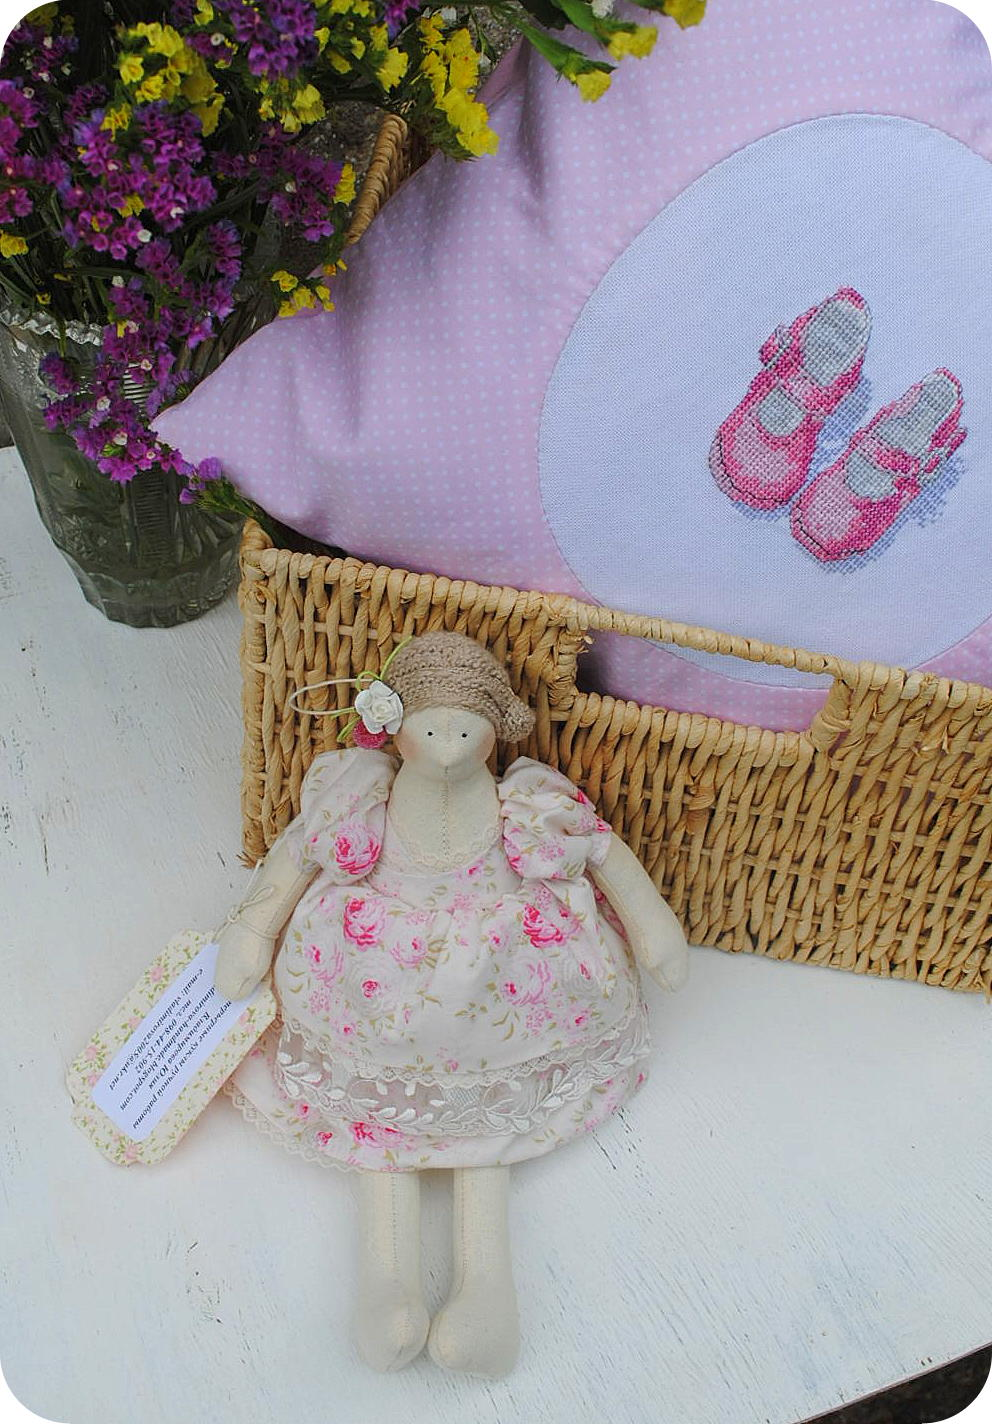 newborn, kids, baby, gift, sewing, embroidery, cross stitch, pink, girl, kids, buy, handmade, shoes, slippers, booties, natural, pillow, fairies, beautiful,doll, tilde, cotton